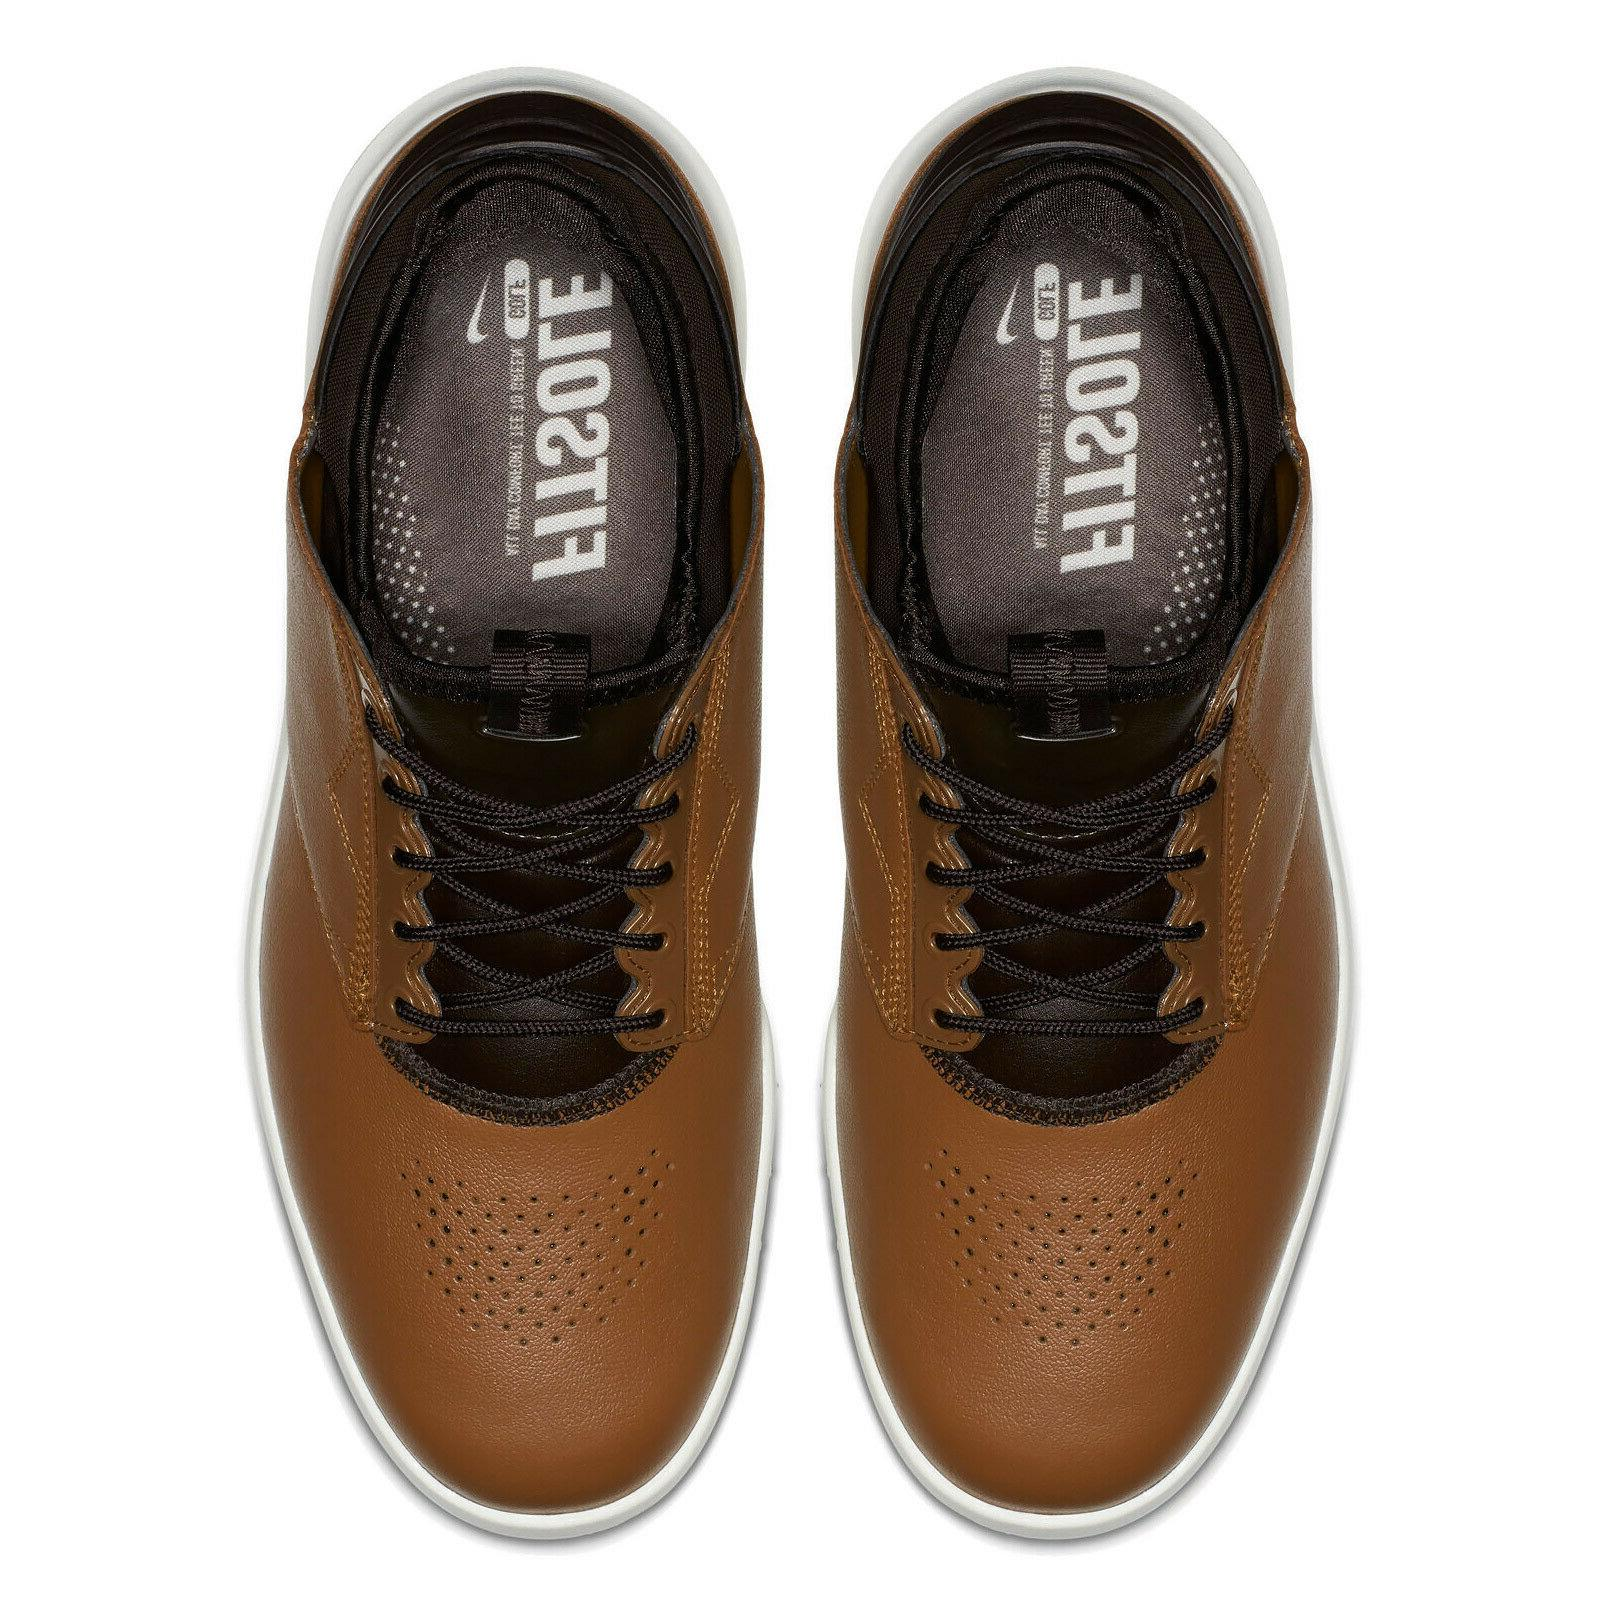 New Air Zoom Direct Mens Golfing Shoes Brown